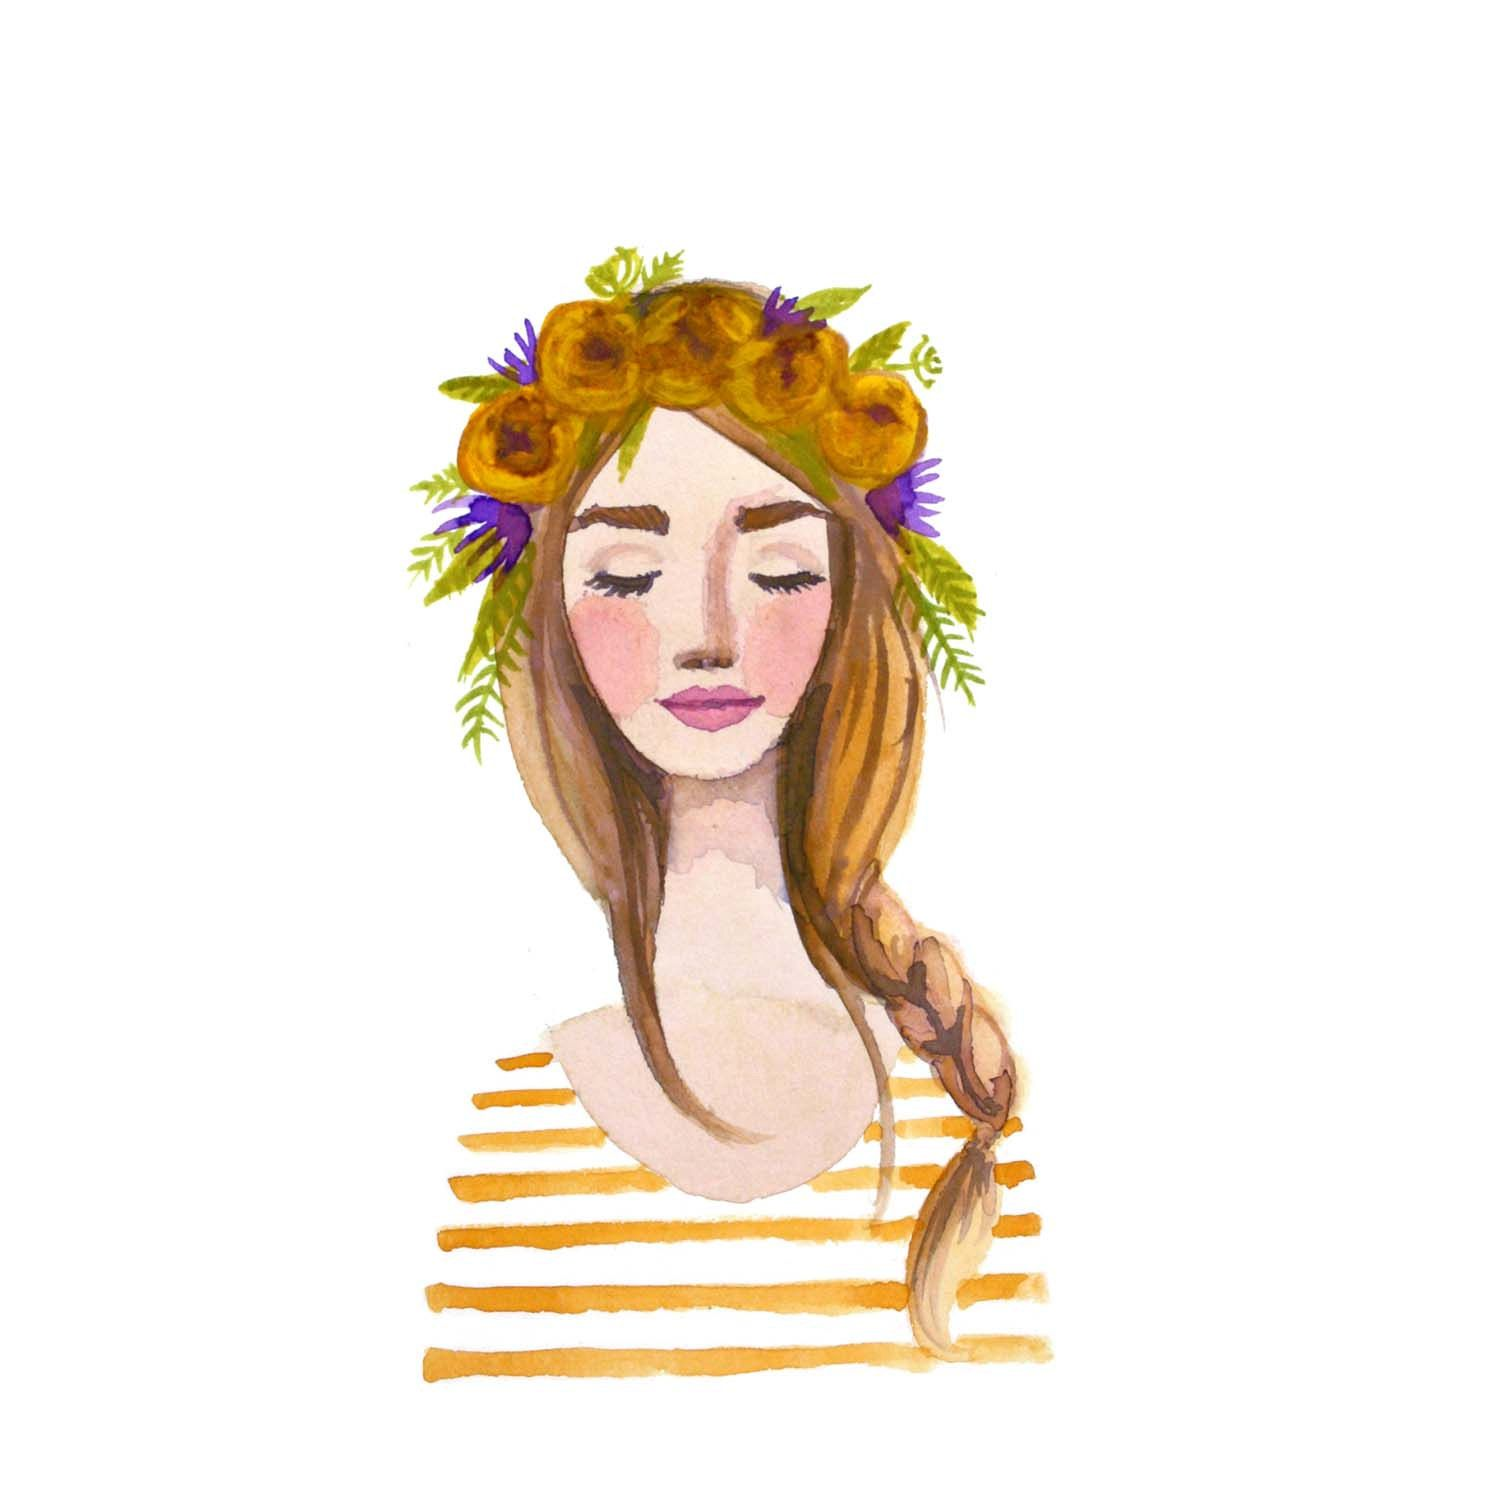 Uncategorized Girl Pictures To Print yellow flower crown girl print of watercolor by kristinebrookshire kristinebrookshire